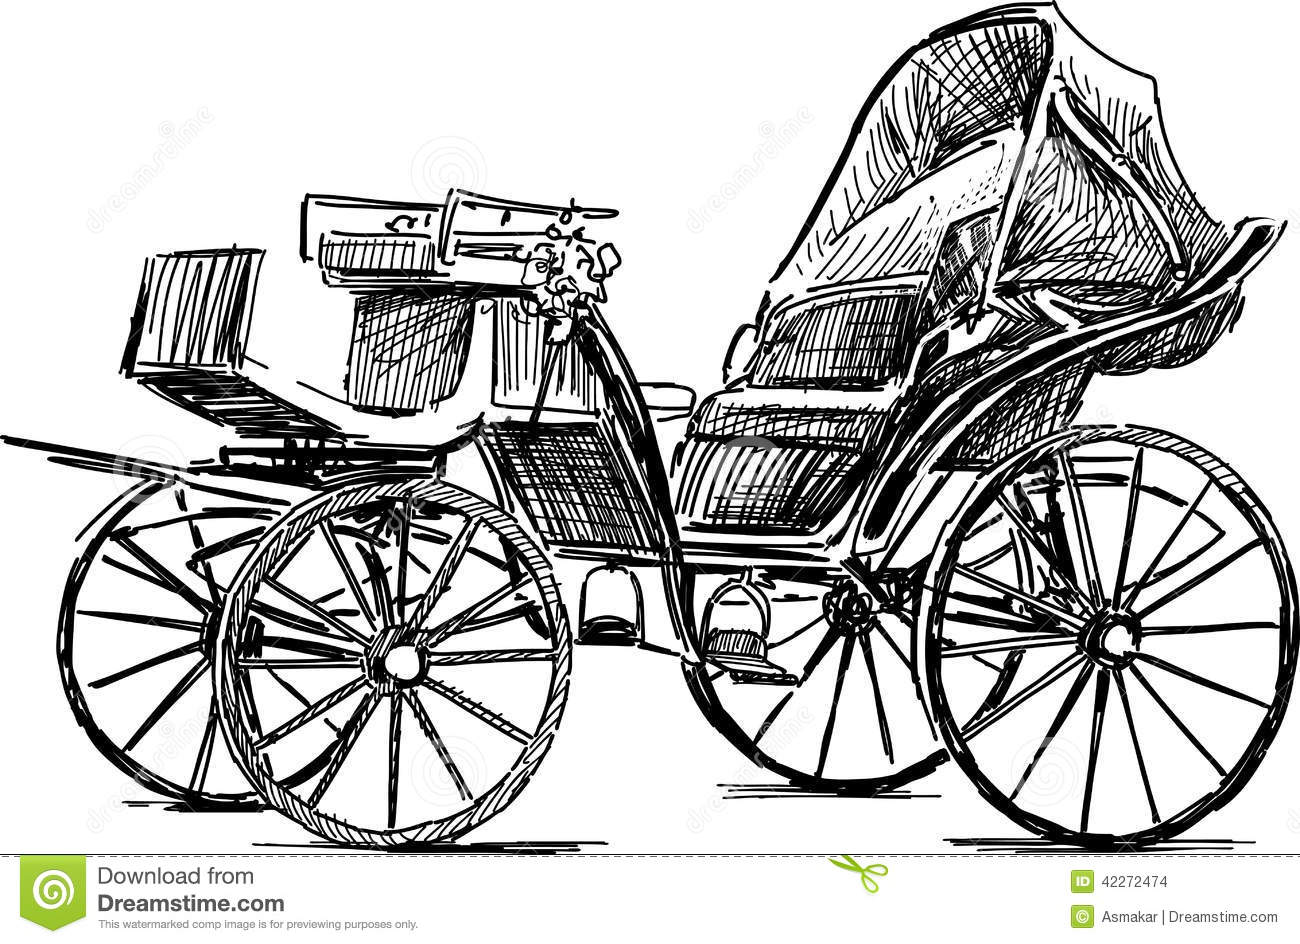 Royalty Free Stock Photography Old Horse Drawn Carriage Vector Image Ancient Carrige Drivers Image30326757 as well Cinderella Carriage in addition Stock Illustration Old Horse Carriage Vector Drawing Vintage Image42272474 further 54416 cart furthermore Royalty Free Stock Photo Vector Drawing Horse Harnessed Carriage Waiting Tourists Image30185075. on vintage horse drawn carriage